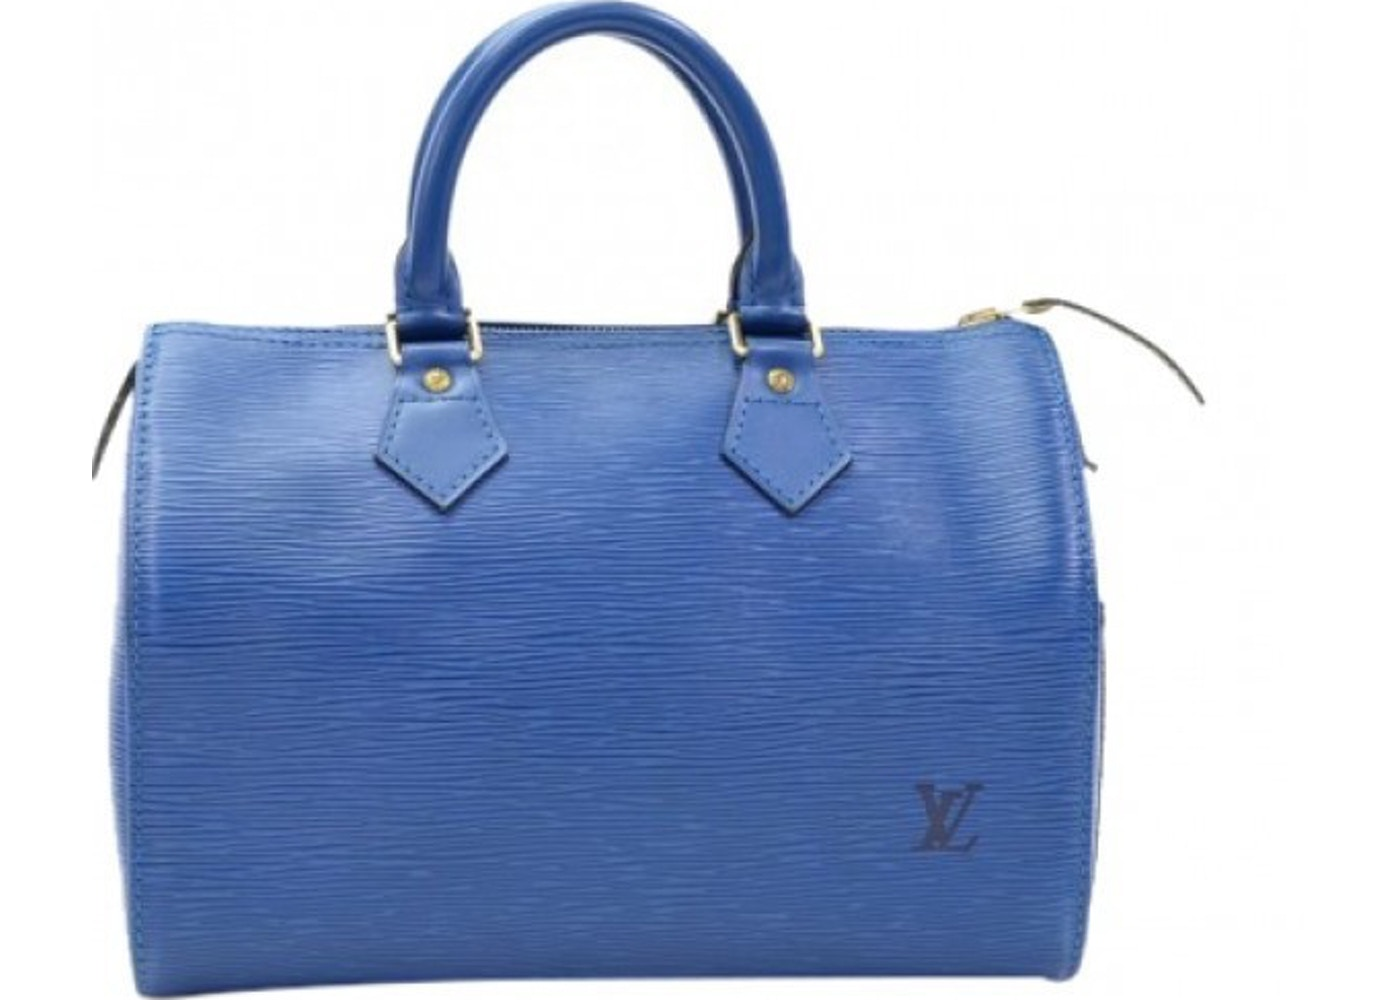 8d4d7ef13ff Louis Vuitton Speedy Epi (Without Accessories) 25 Blue. Epi (Without  Accessories) 25 Blue